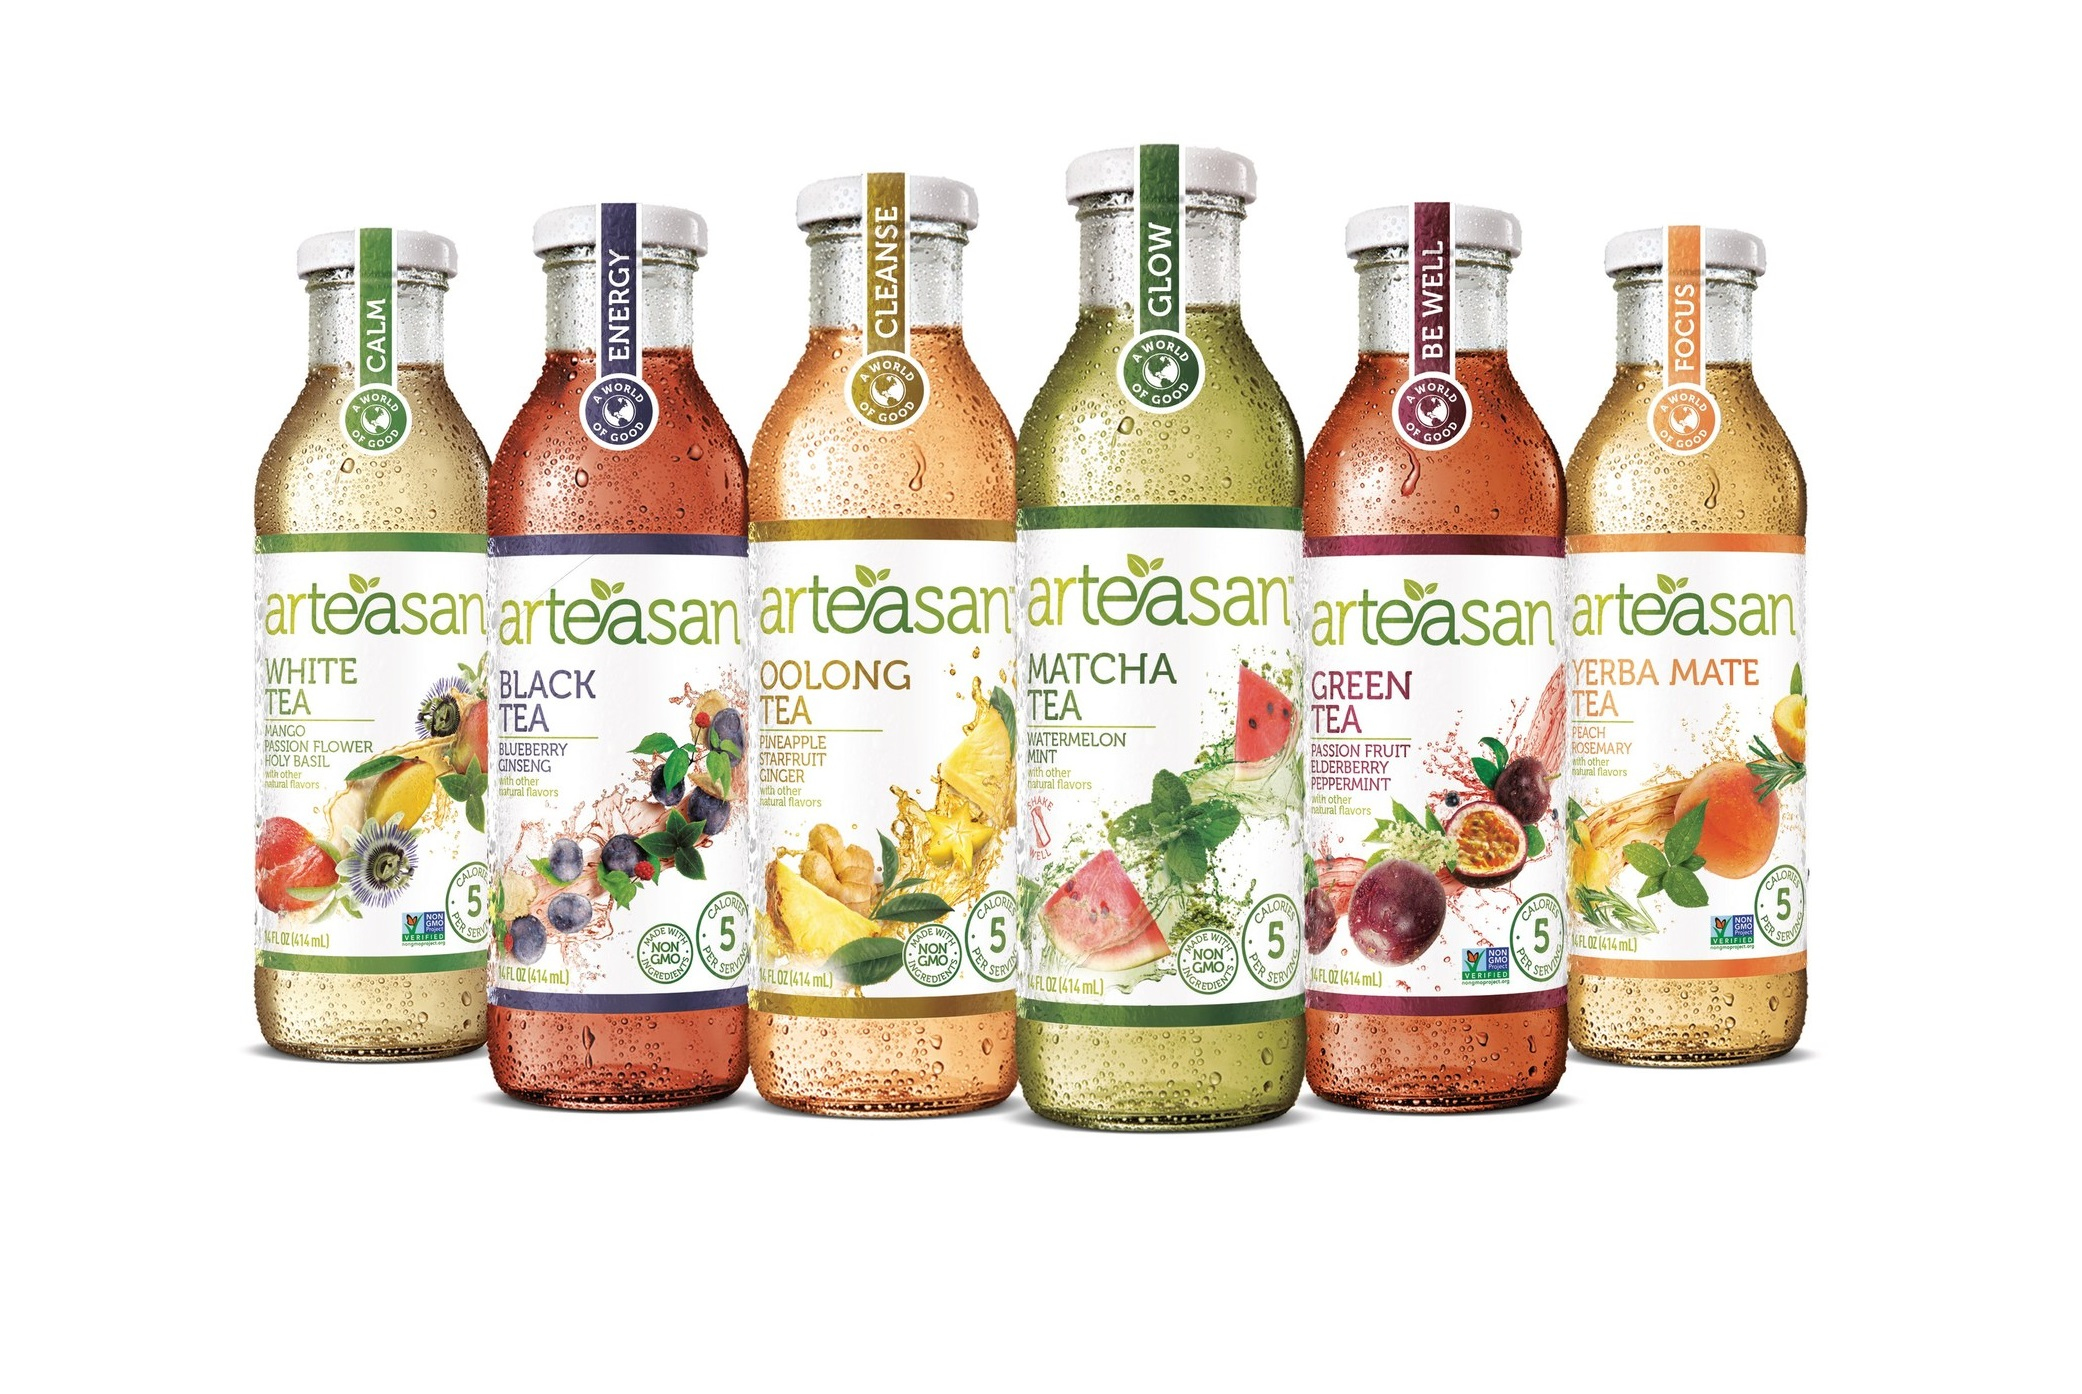 Arteasan Launches Two New Flavors